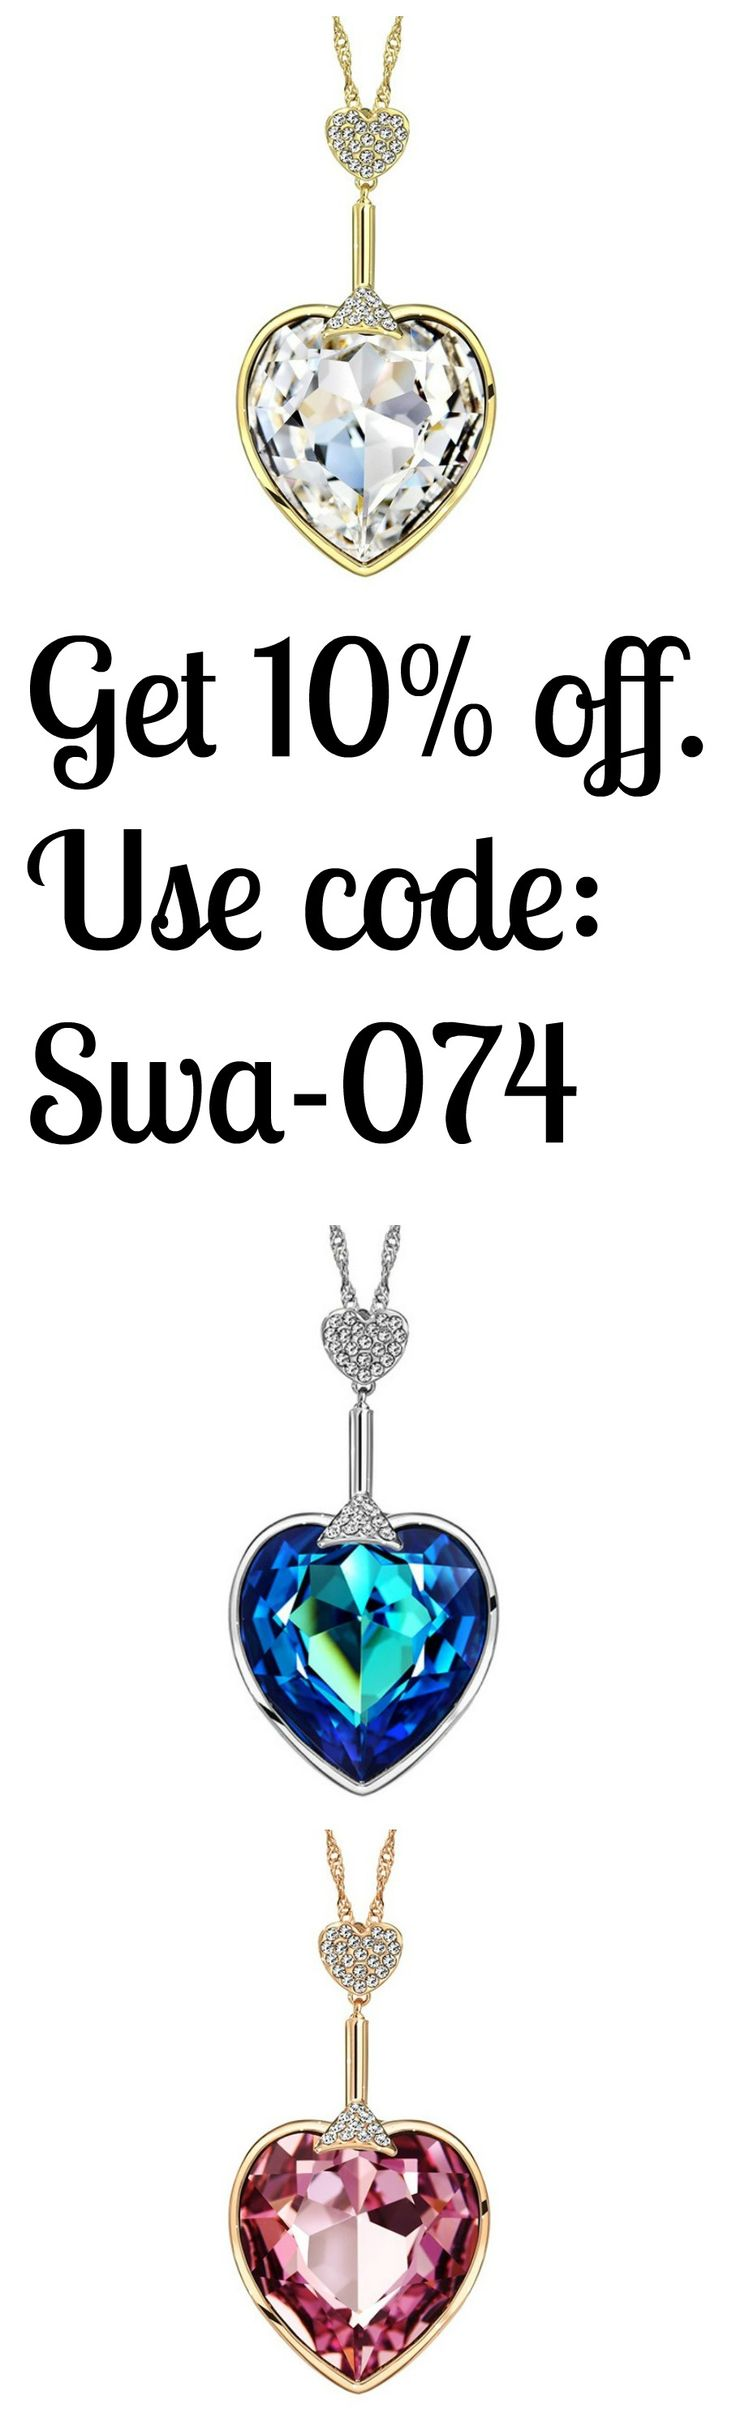 Go to Ziphlets to get these incredible  Swarovski heart necklaces. Get 10% off code: Swa-074